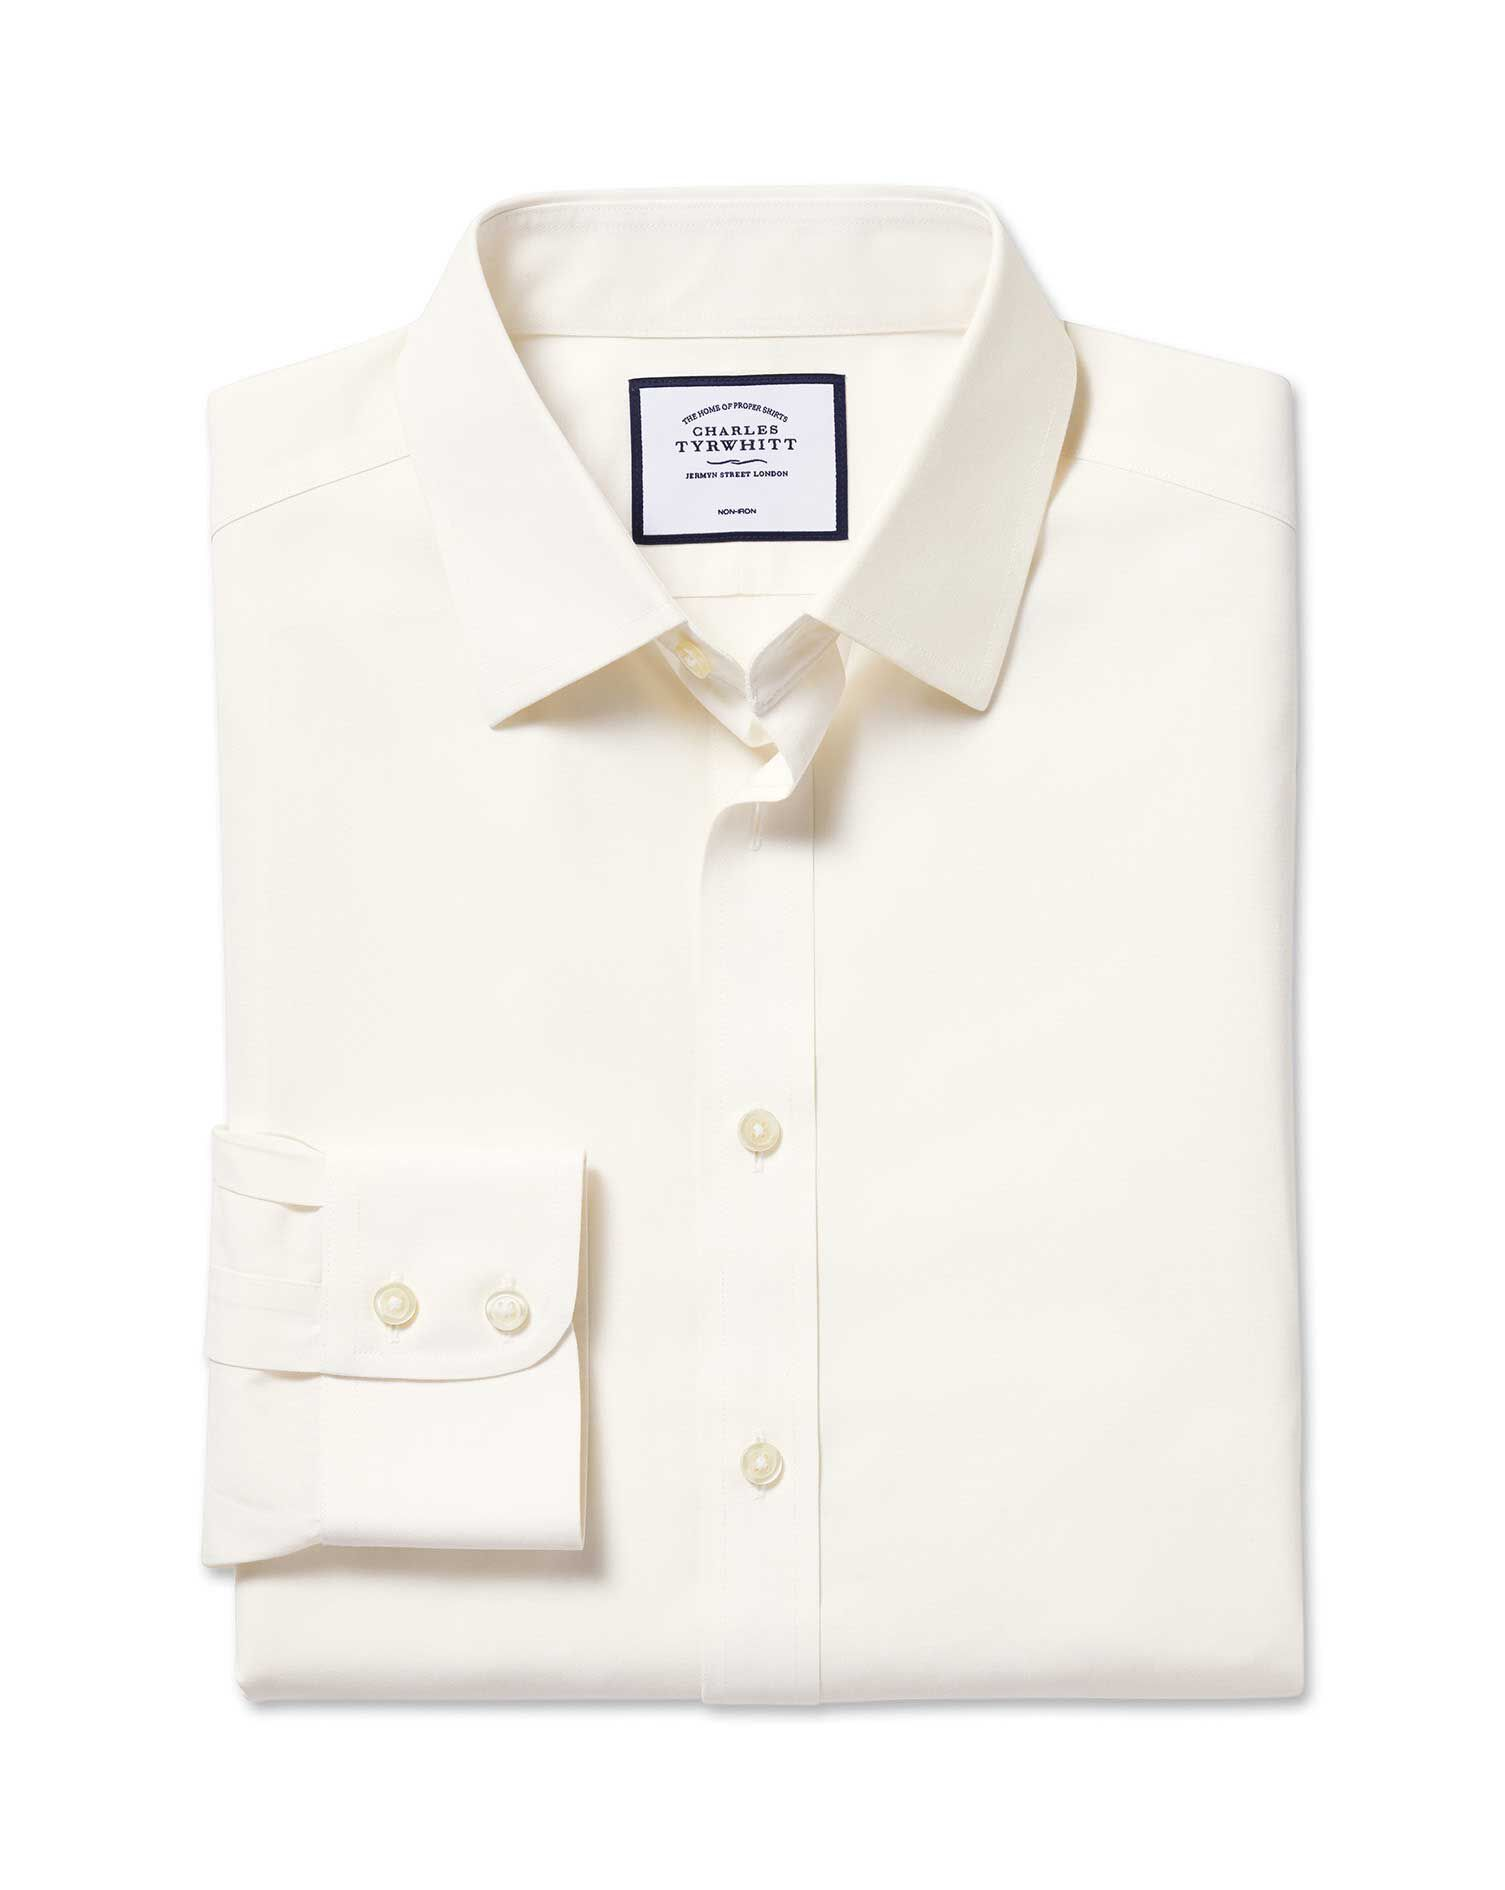 Slim Fit Non-Iron Poplin Cream Cotton Formal Shirt Single Cuff Size 17/34 by Charles Tyrwhitt